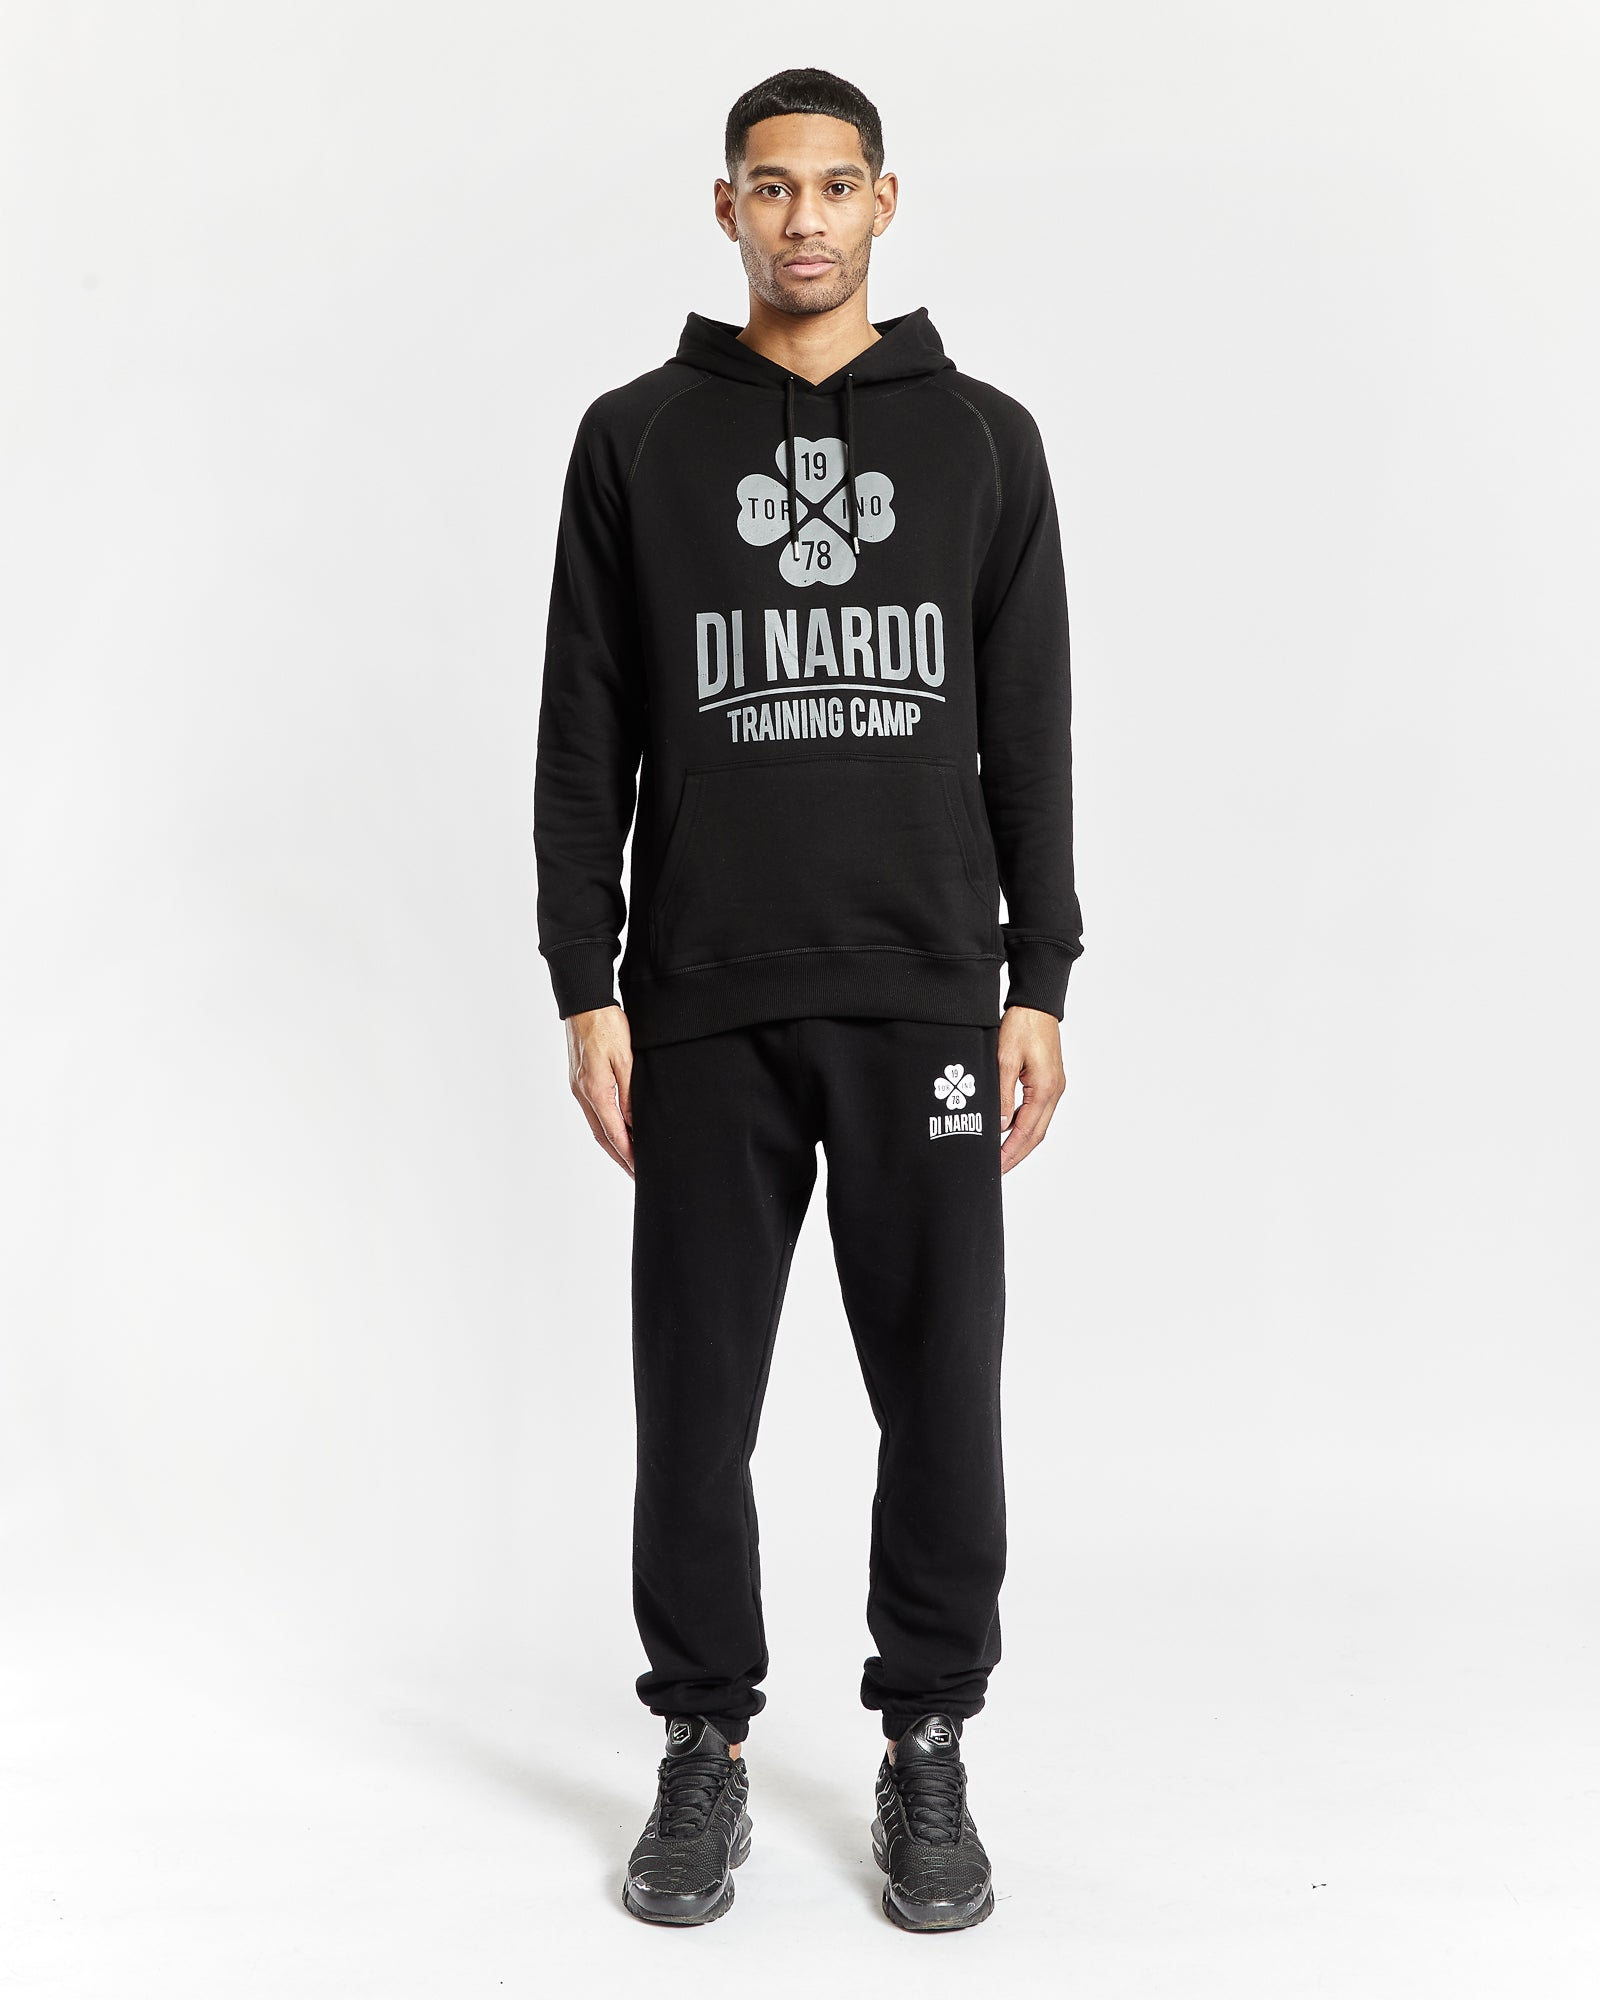 Di Nardo Men's Training Camp Hoodie (Black)